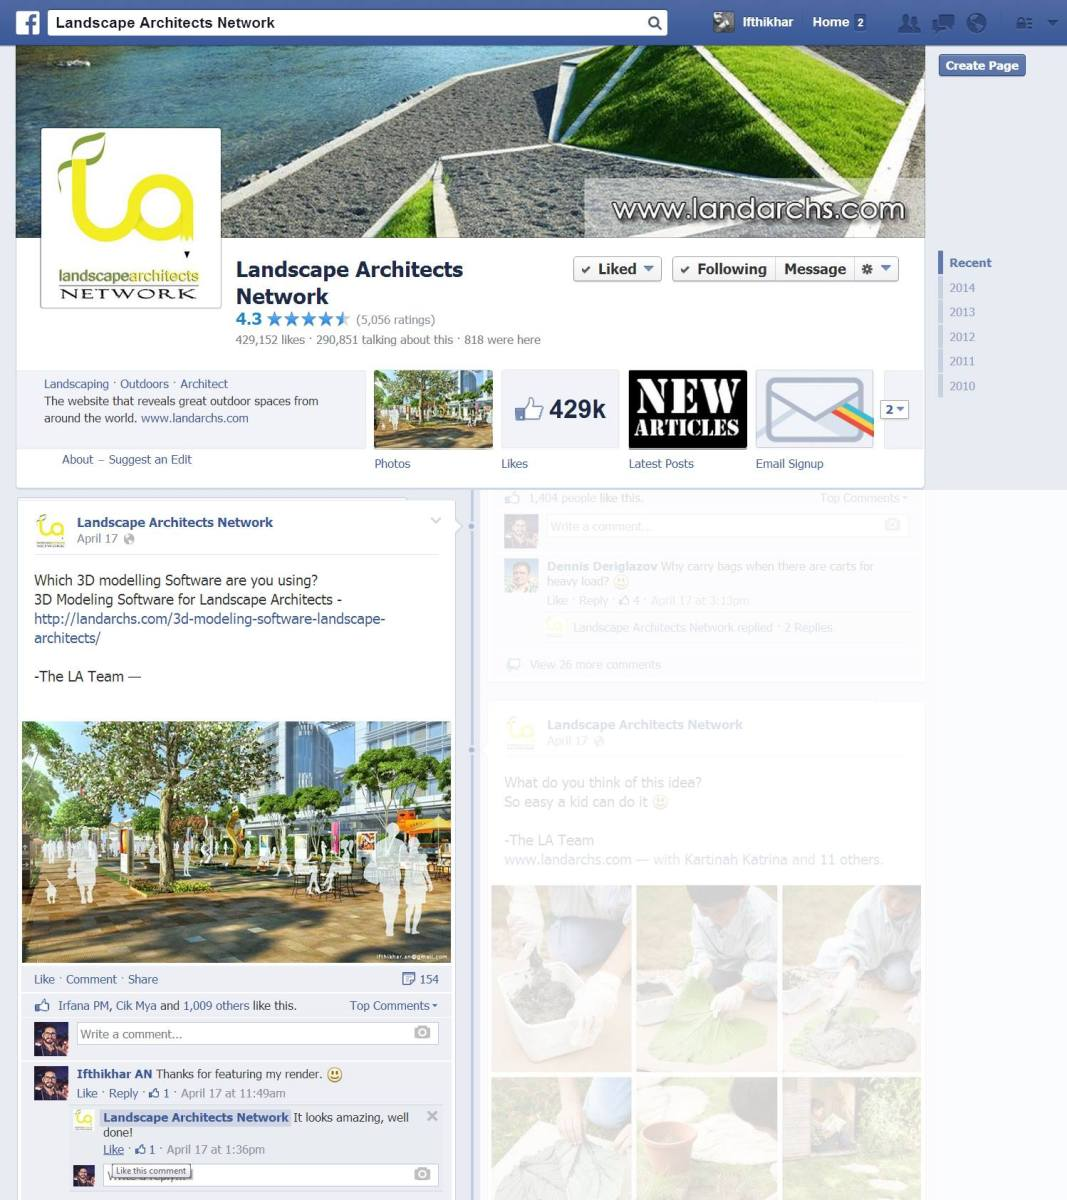 https://www.facebook.com/LandscapeArchitectsPage/photos/a.414474606982.203397.401951976982/10152391291291983/?type=1&theater